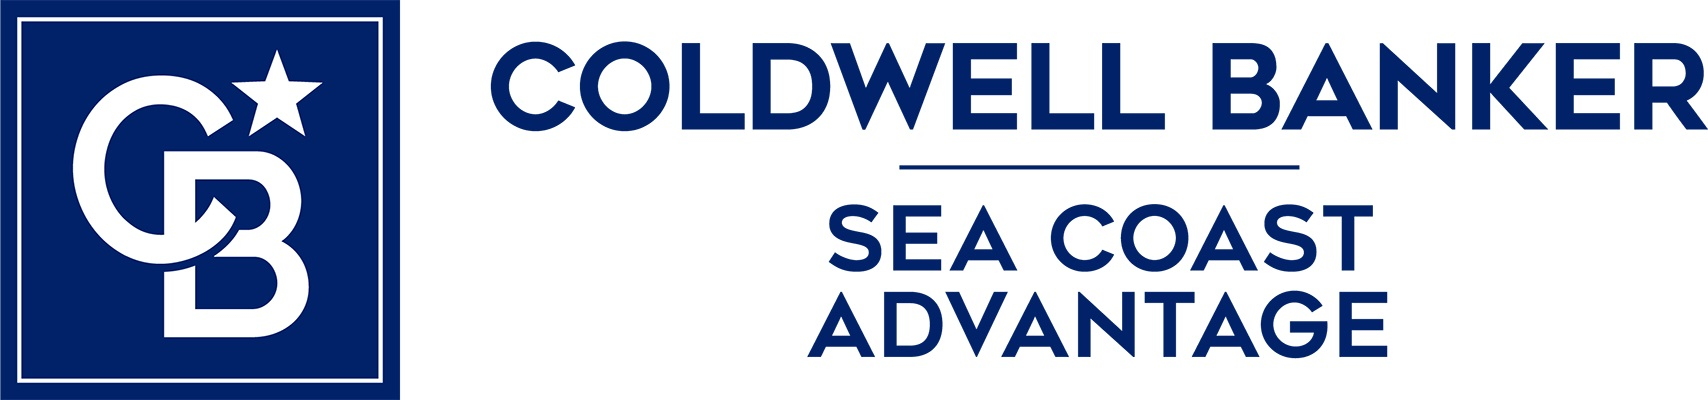 Kim Samtmann - Coldwell Banker Sea Coast Advantage Realty Logo